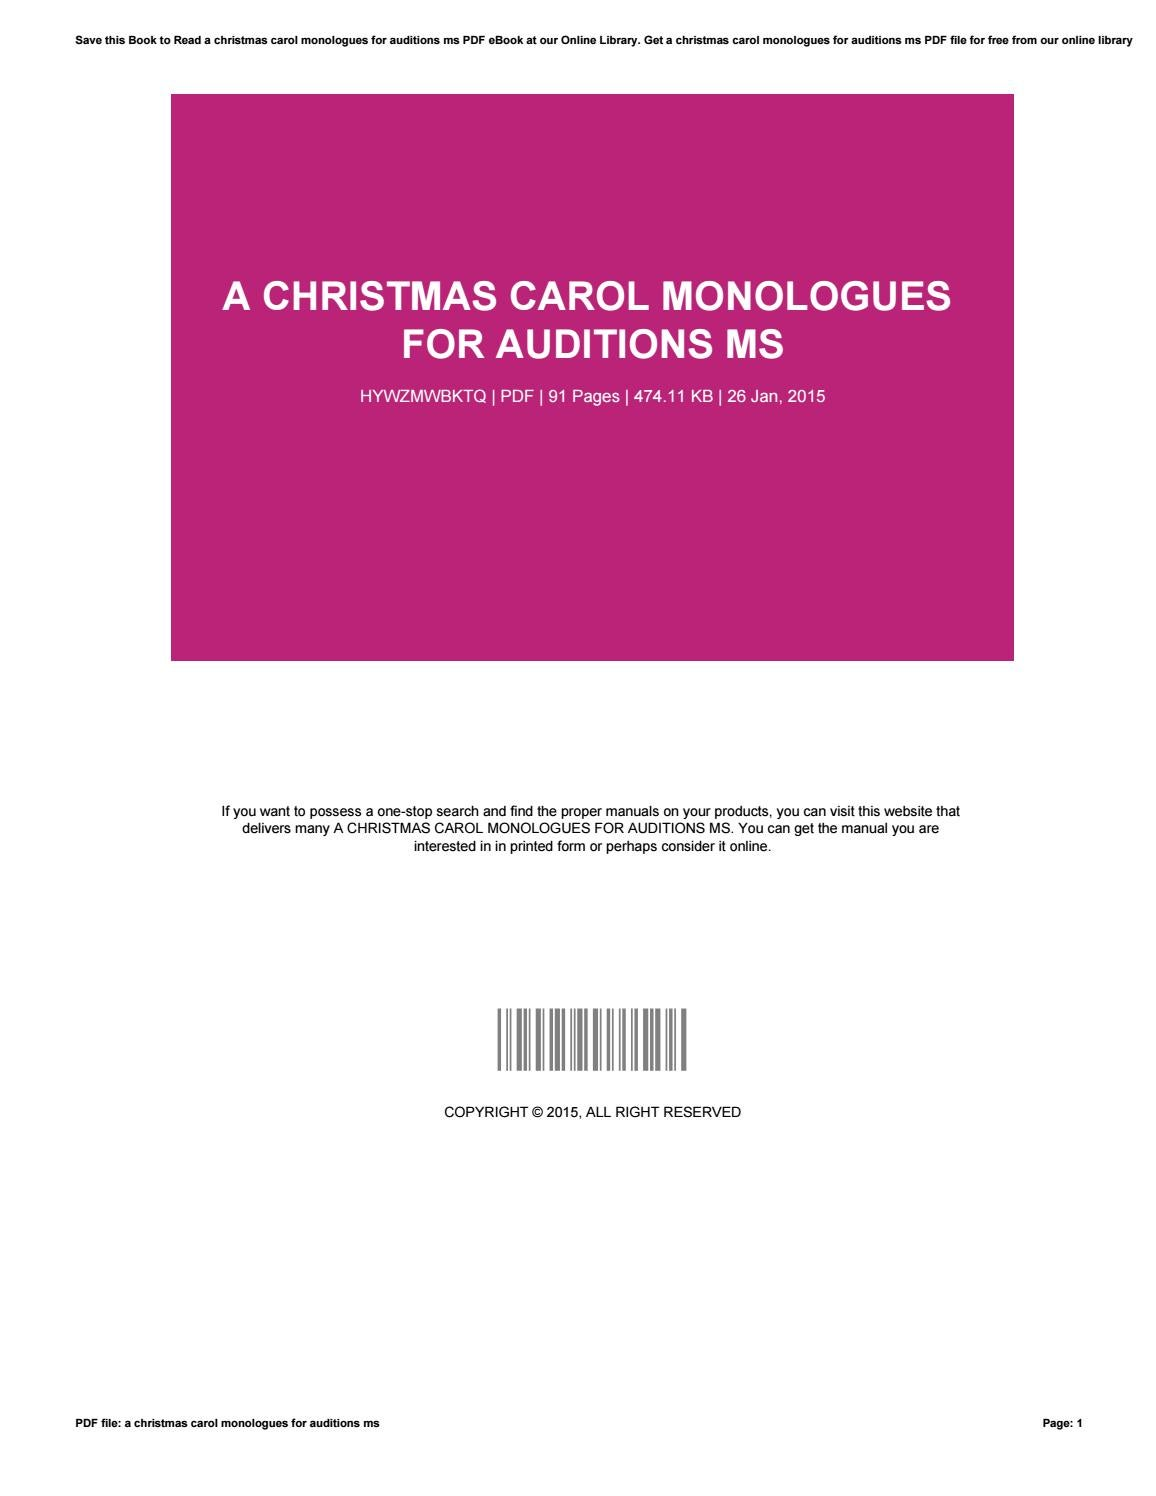 A Christmas Carol Pdf.A Christmas Carol Monologues For Auditions Ms By